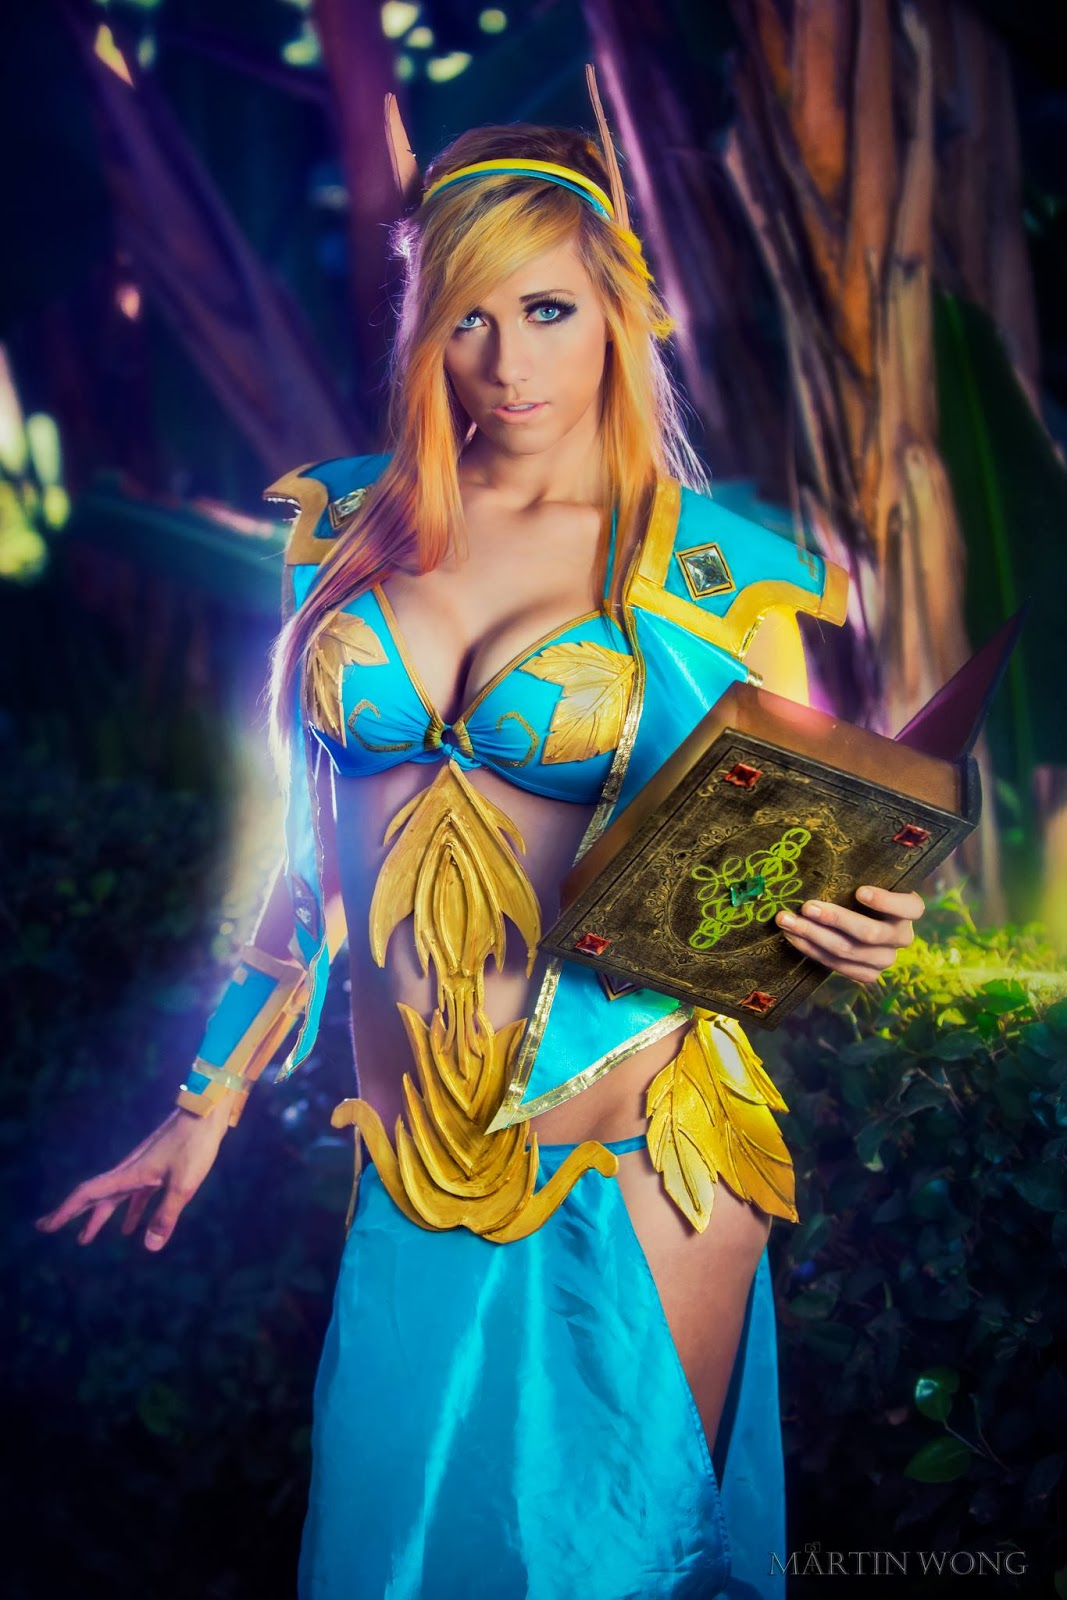 Blood elf babes girl pic hentia tubes